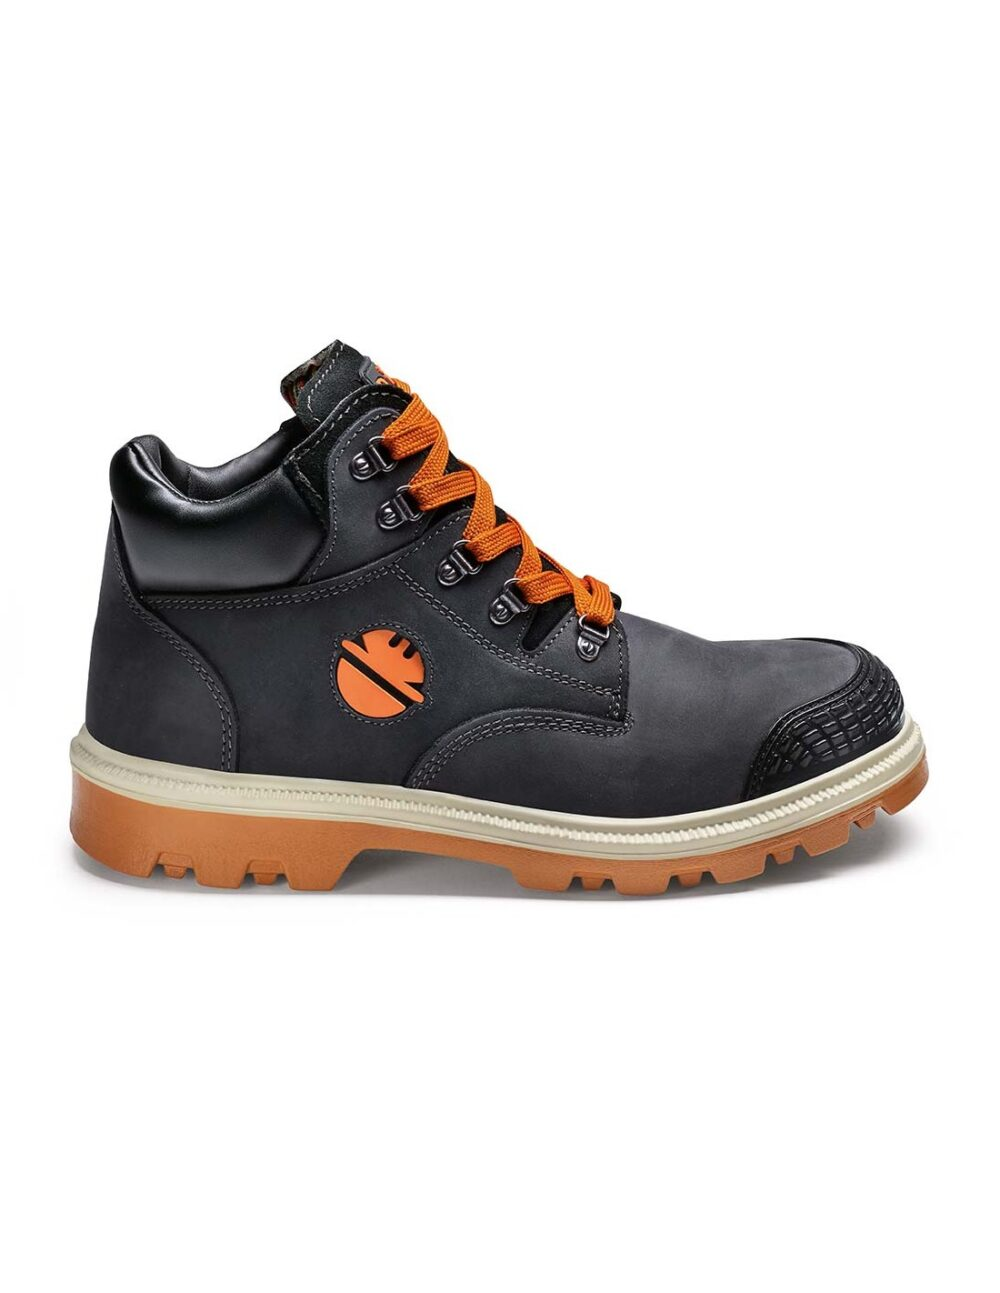 Digger Safety boot in black by dike